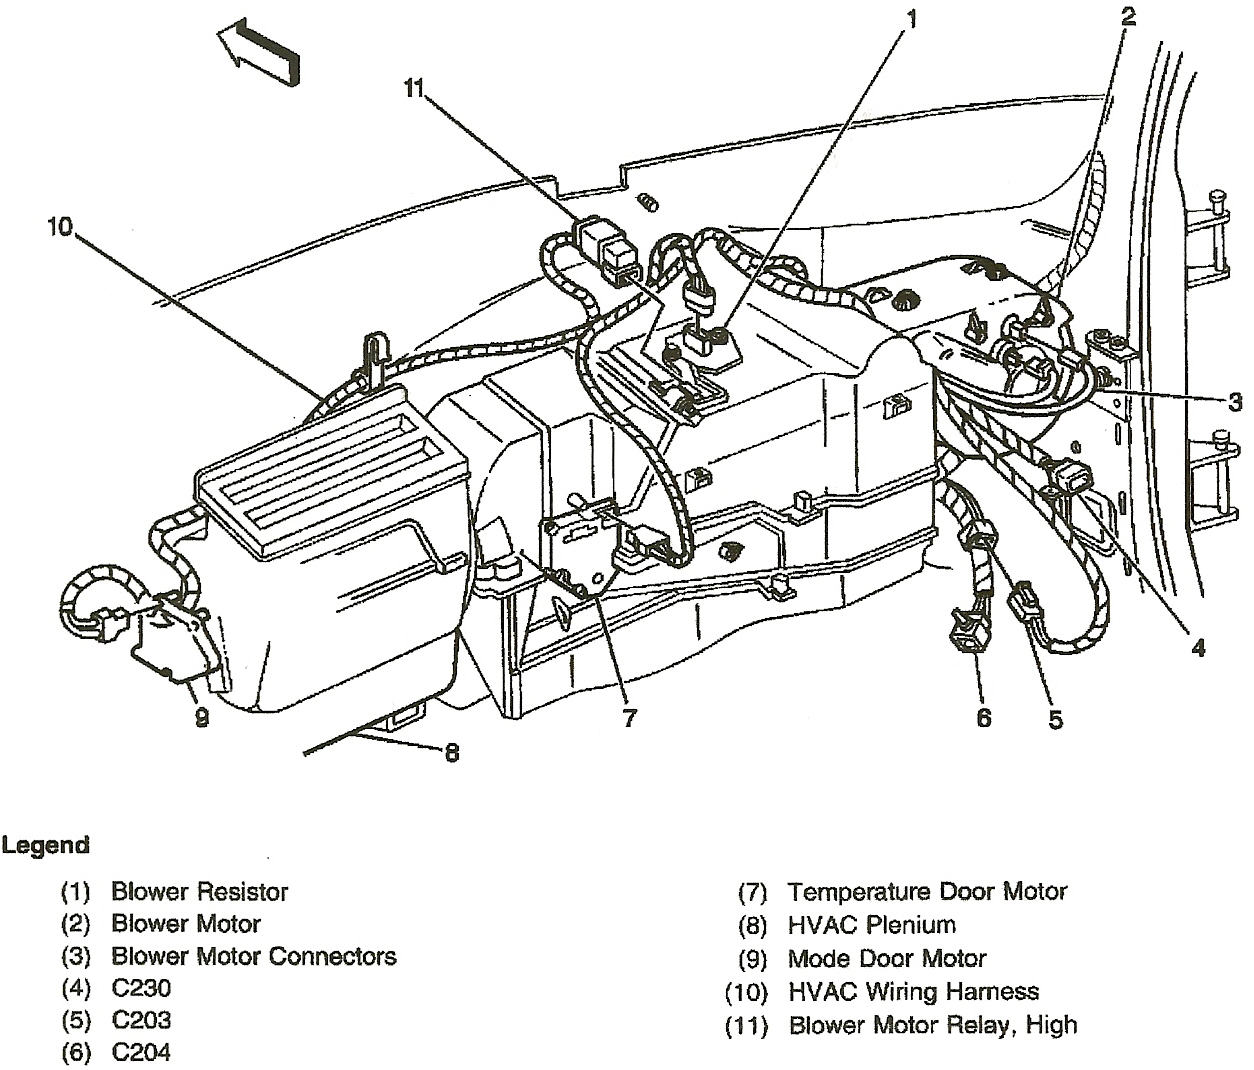 2003 chevy silverado manual doors diagram wiring schematic